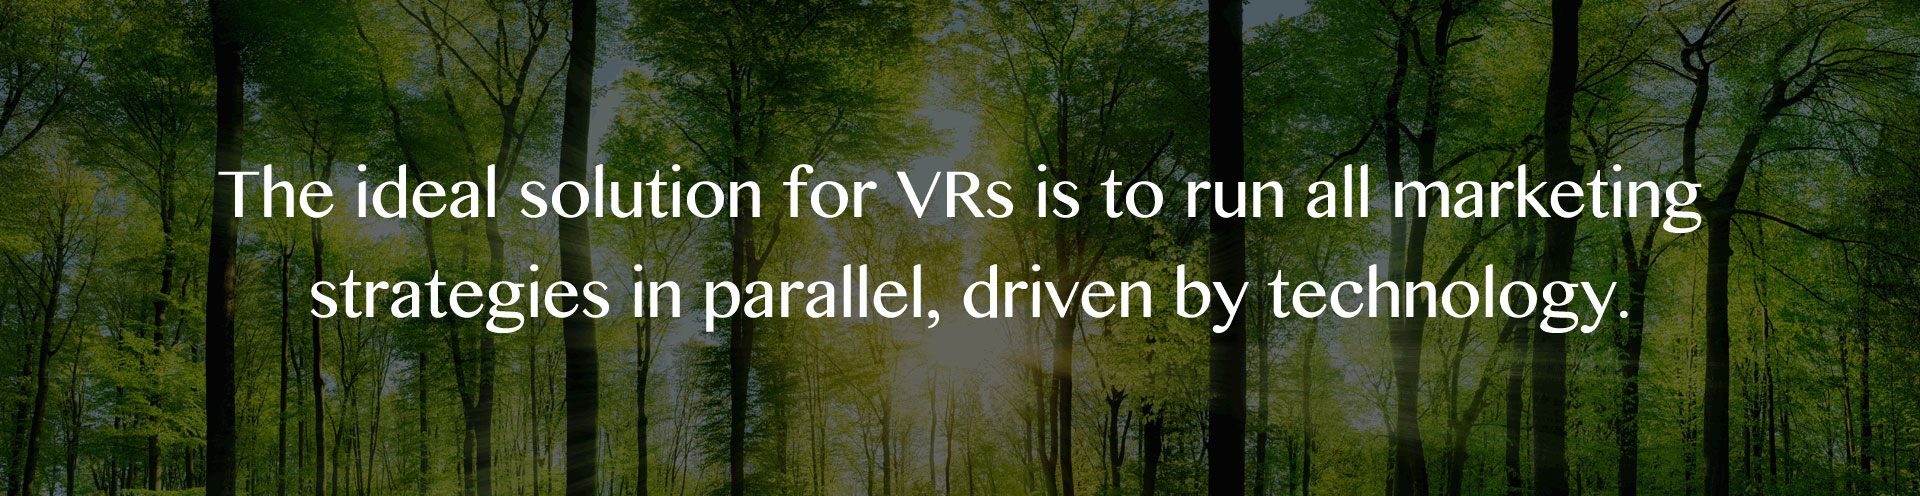 the ideal solution for VRs is to run all marketing strategies in parallel, driven by technology